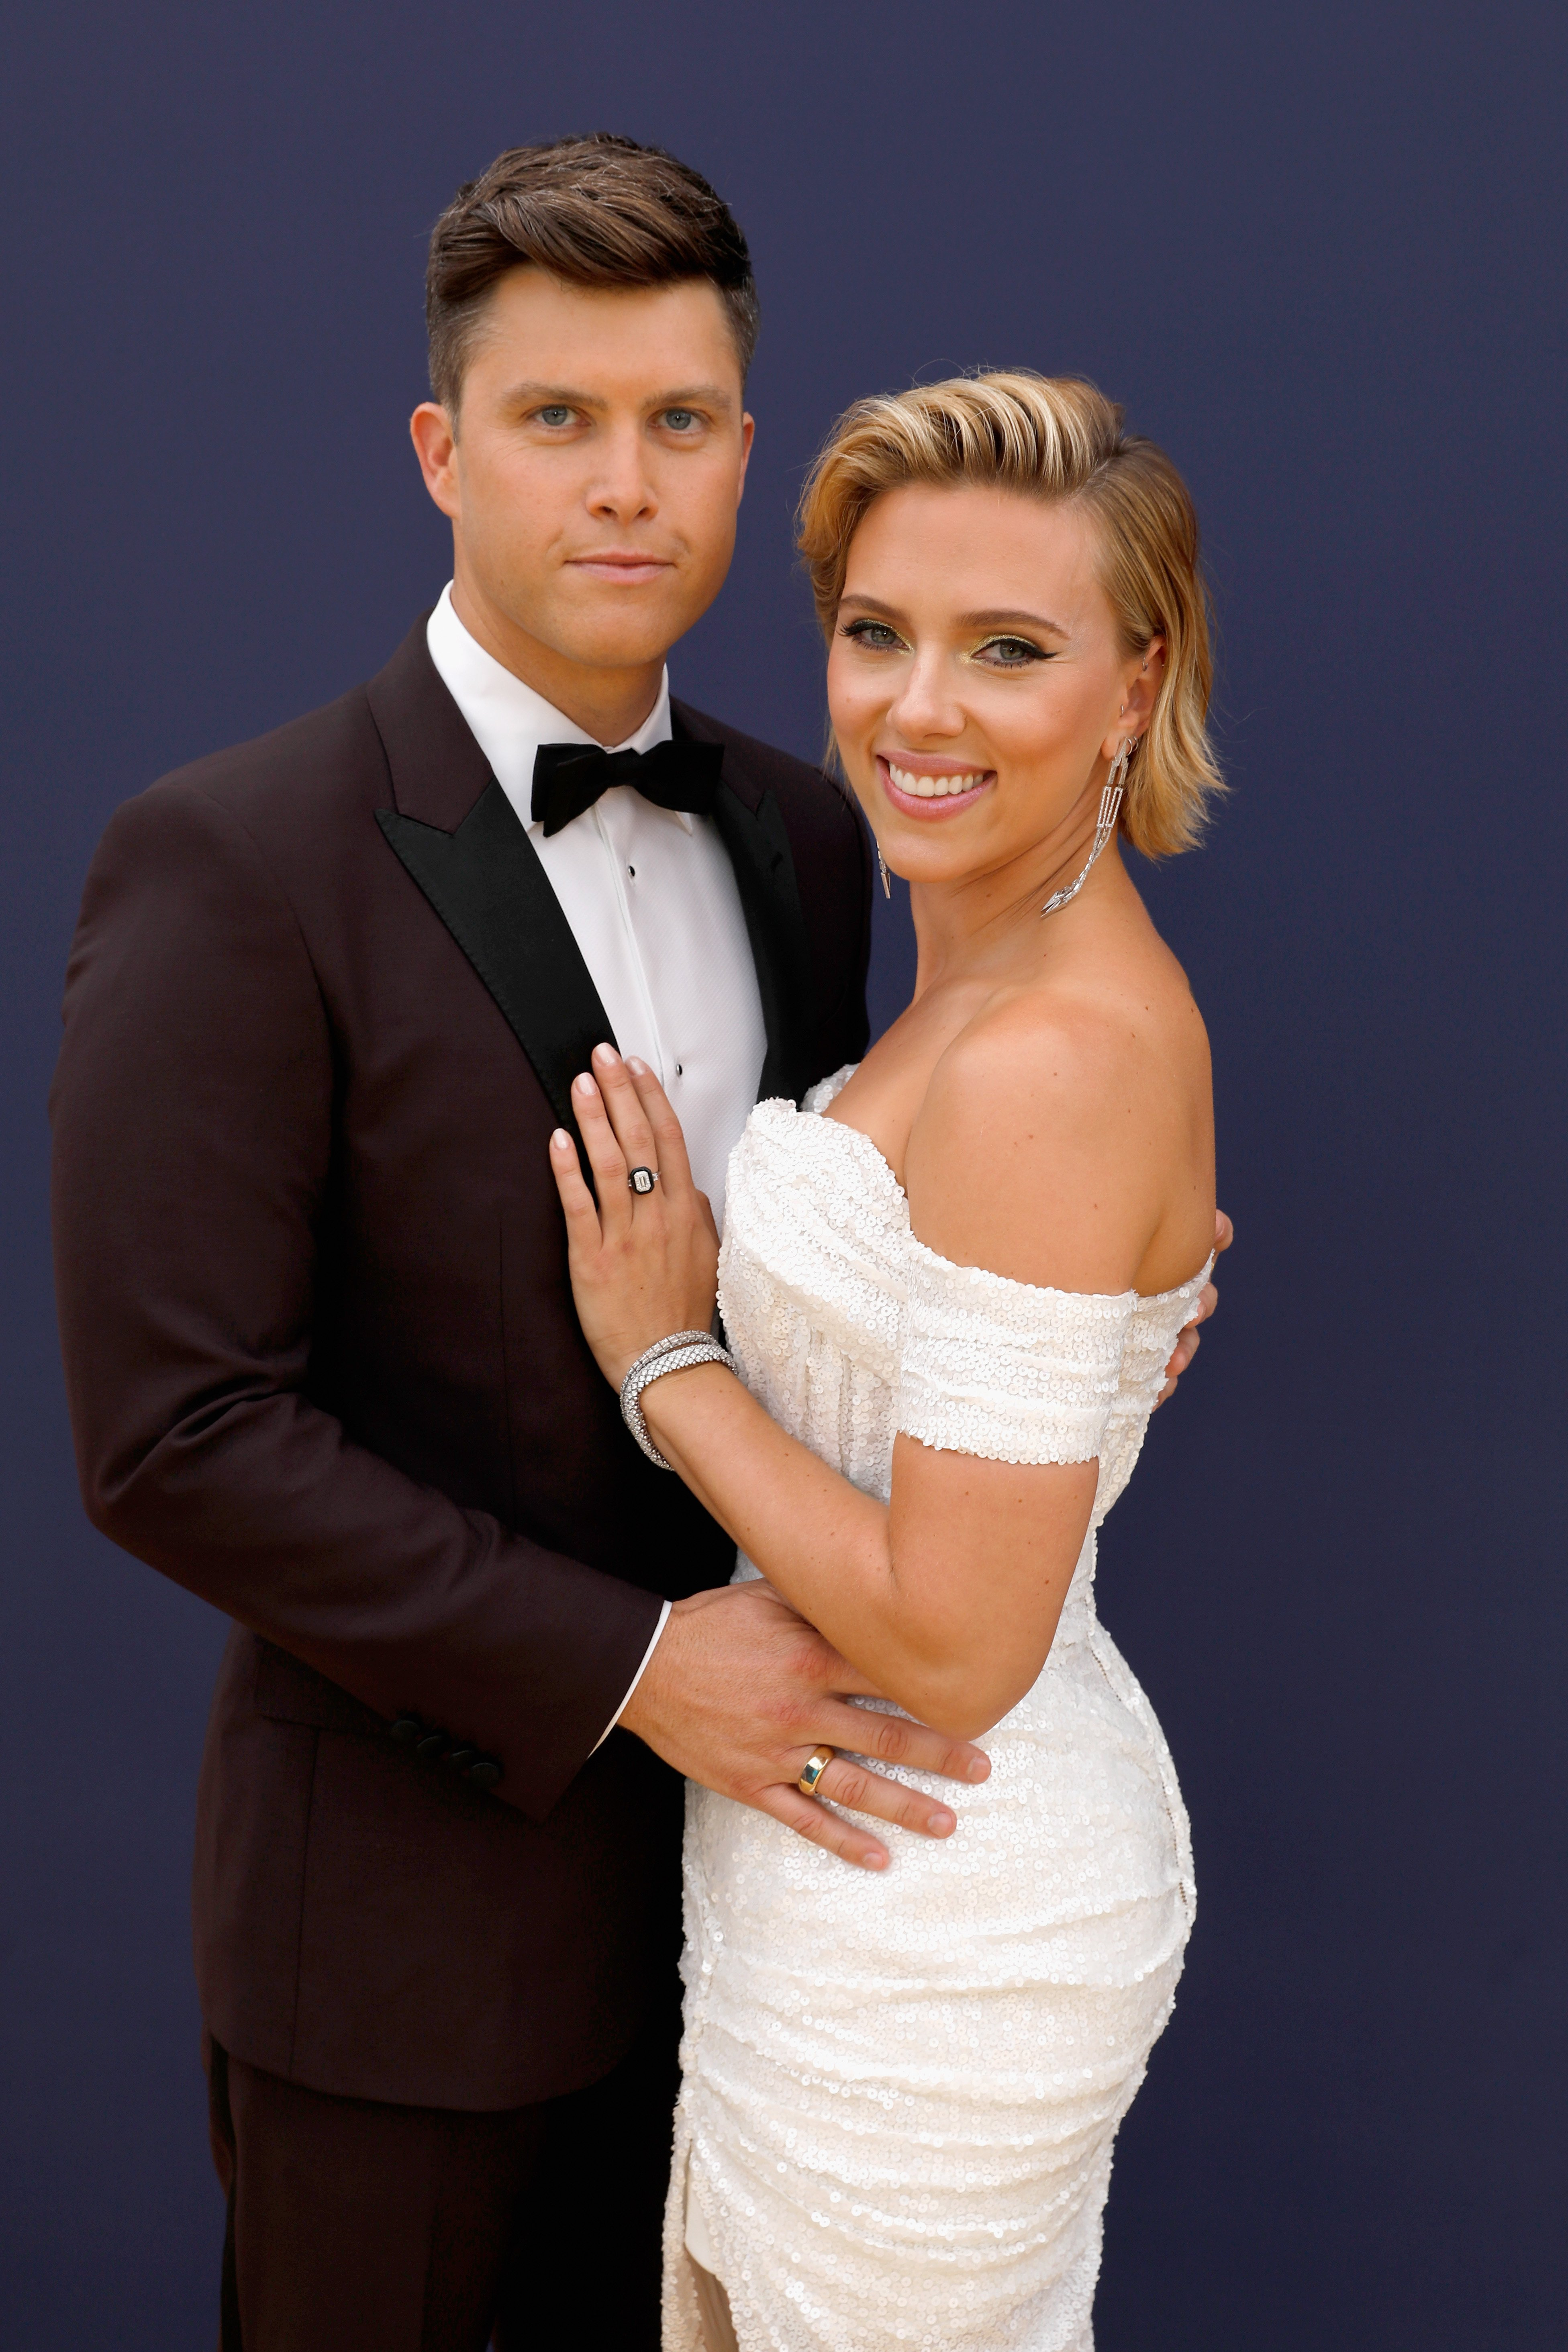 Colin Jost and Scarlett Johansson pose at the 70th Annual Primetime Emmy Awards red carpet on September 17, 2018 | Photo: Getty Images